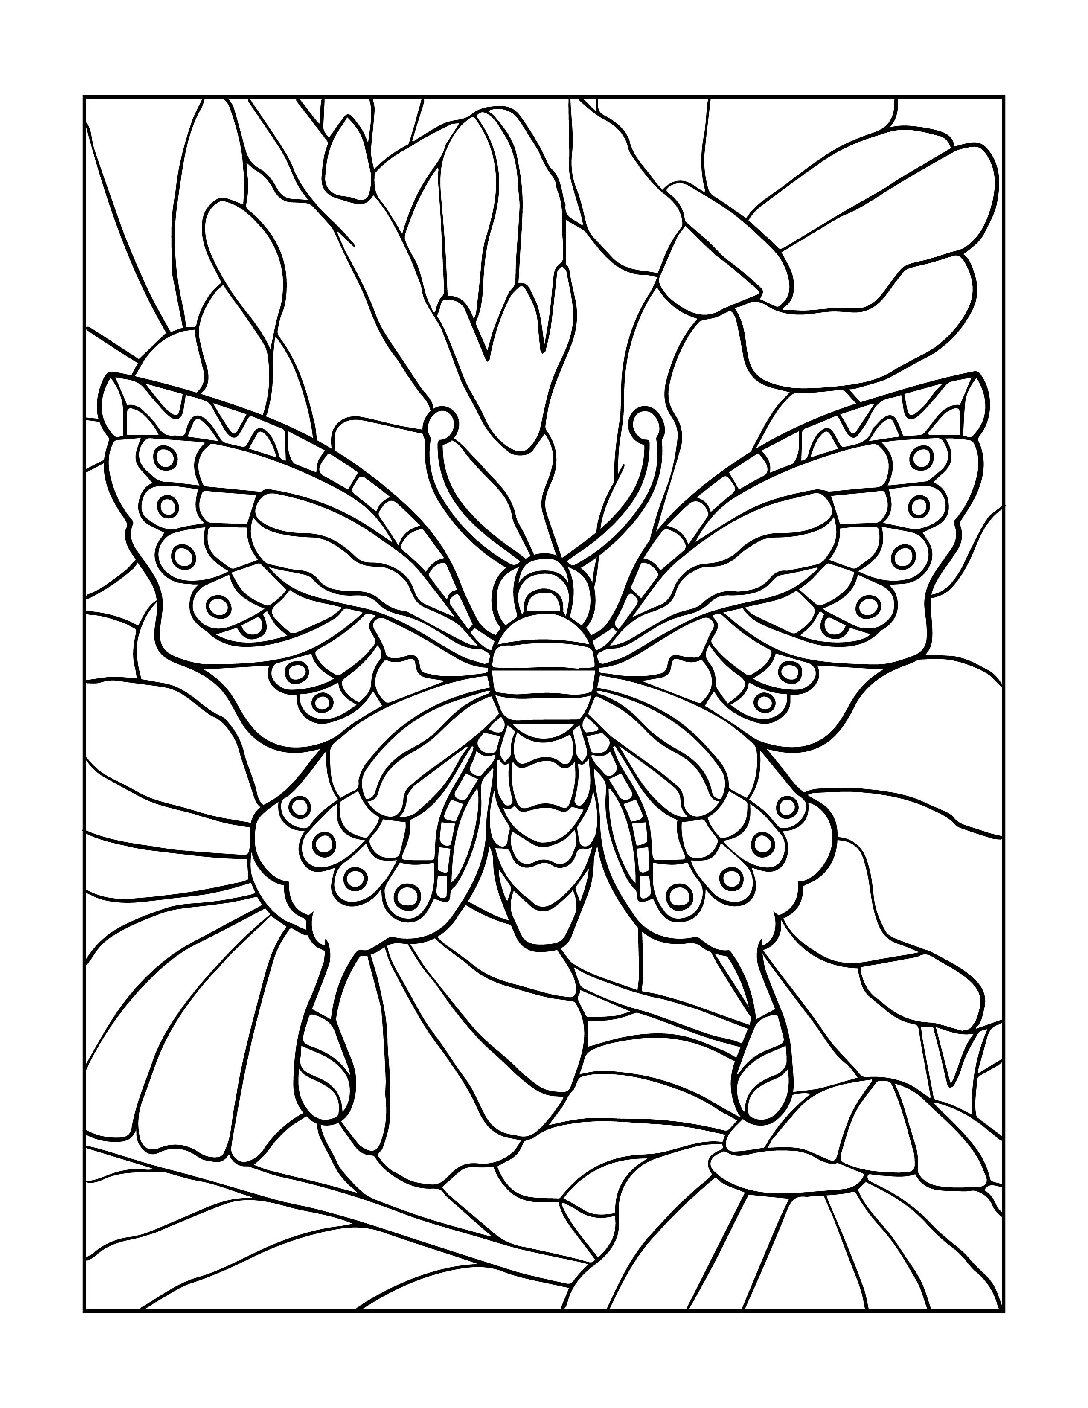 Coloring-Pages_Butterflies-3-01-1-pdf Free Printable Butterfly Colouring Pages